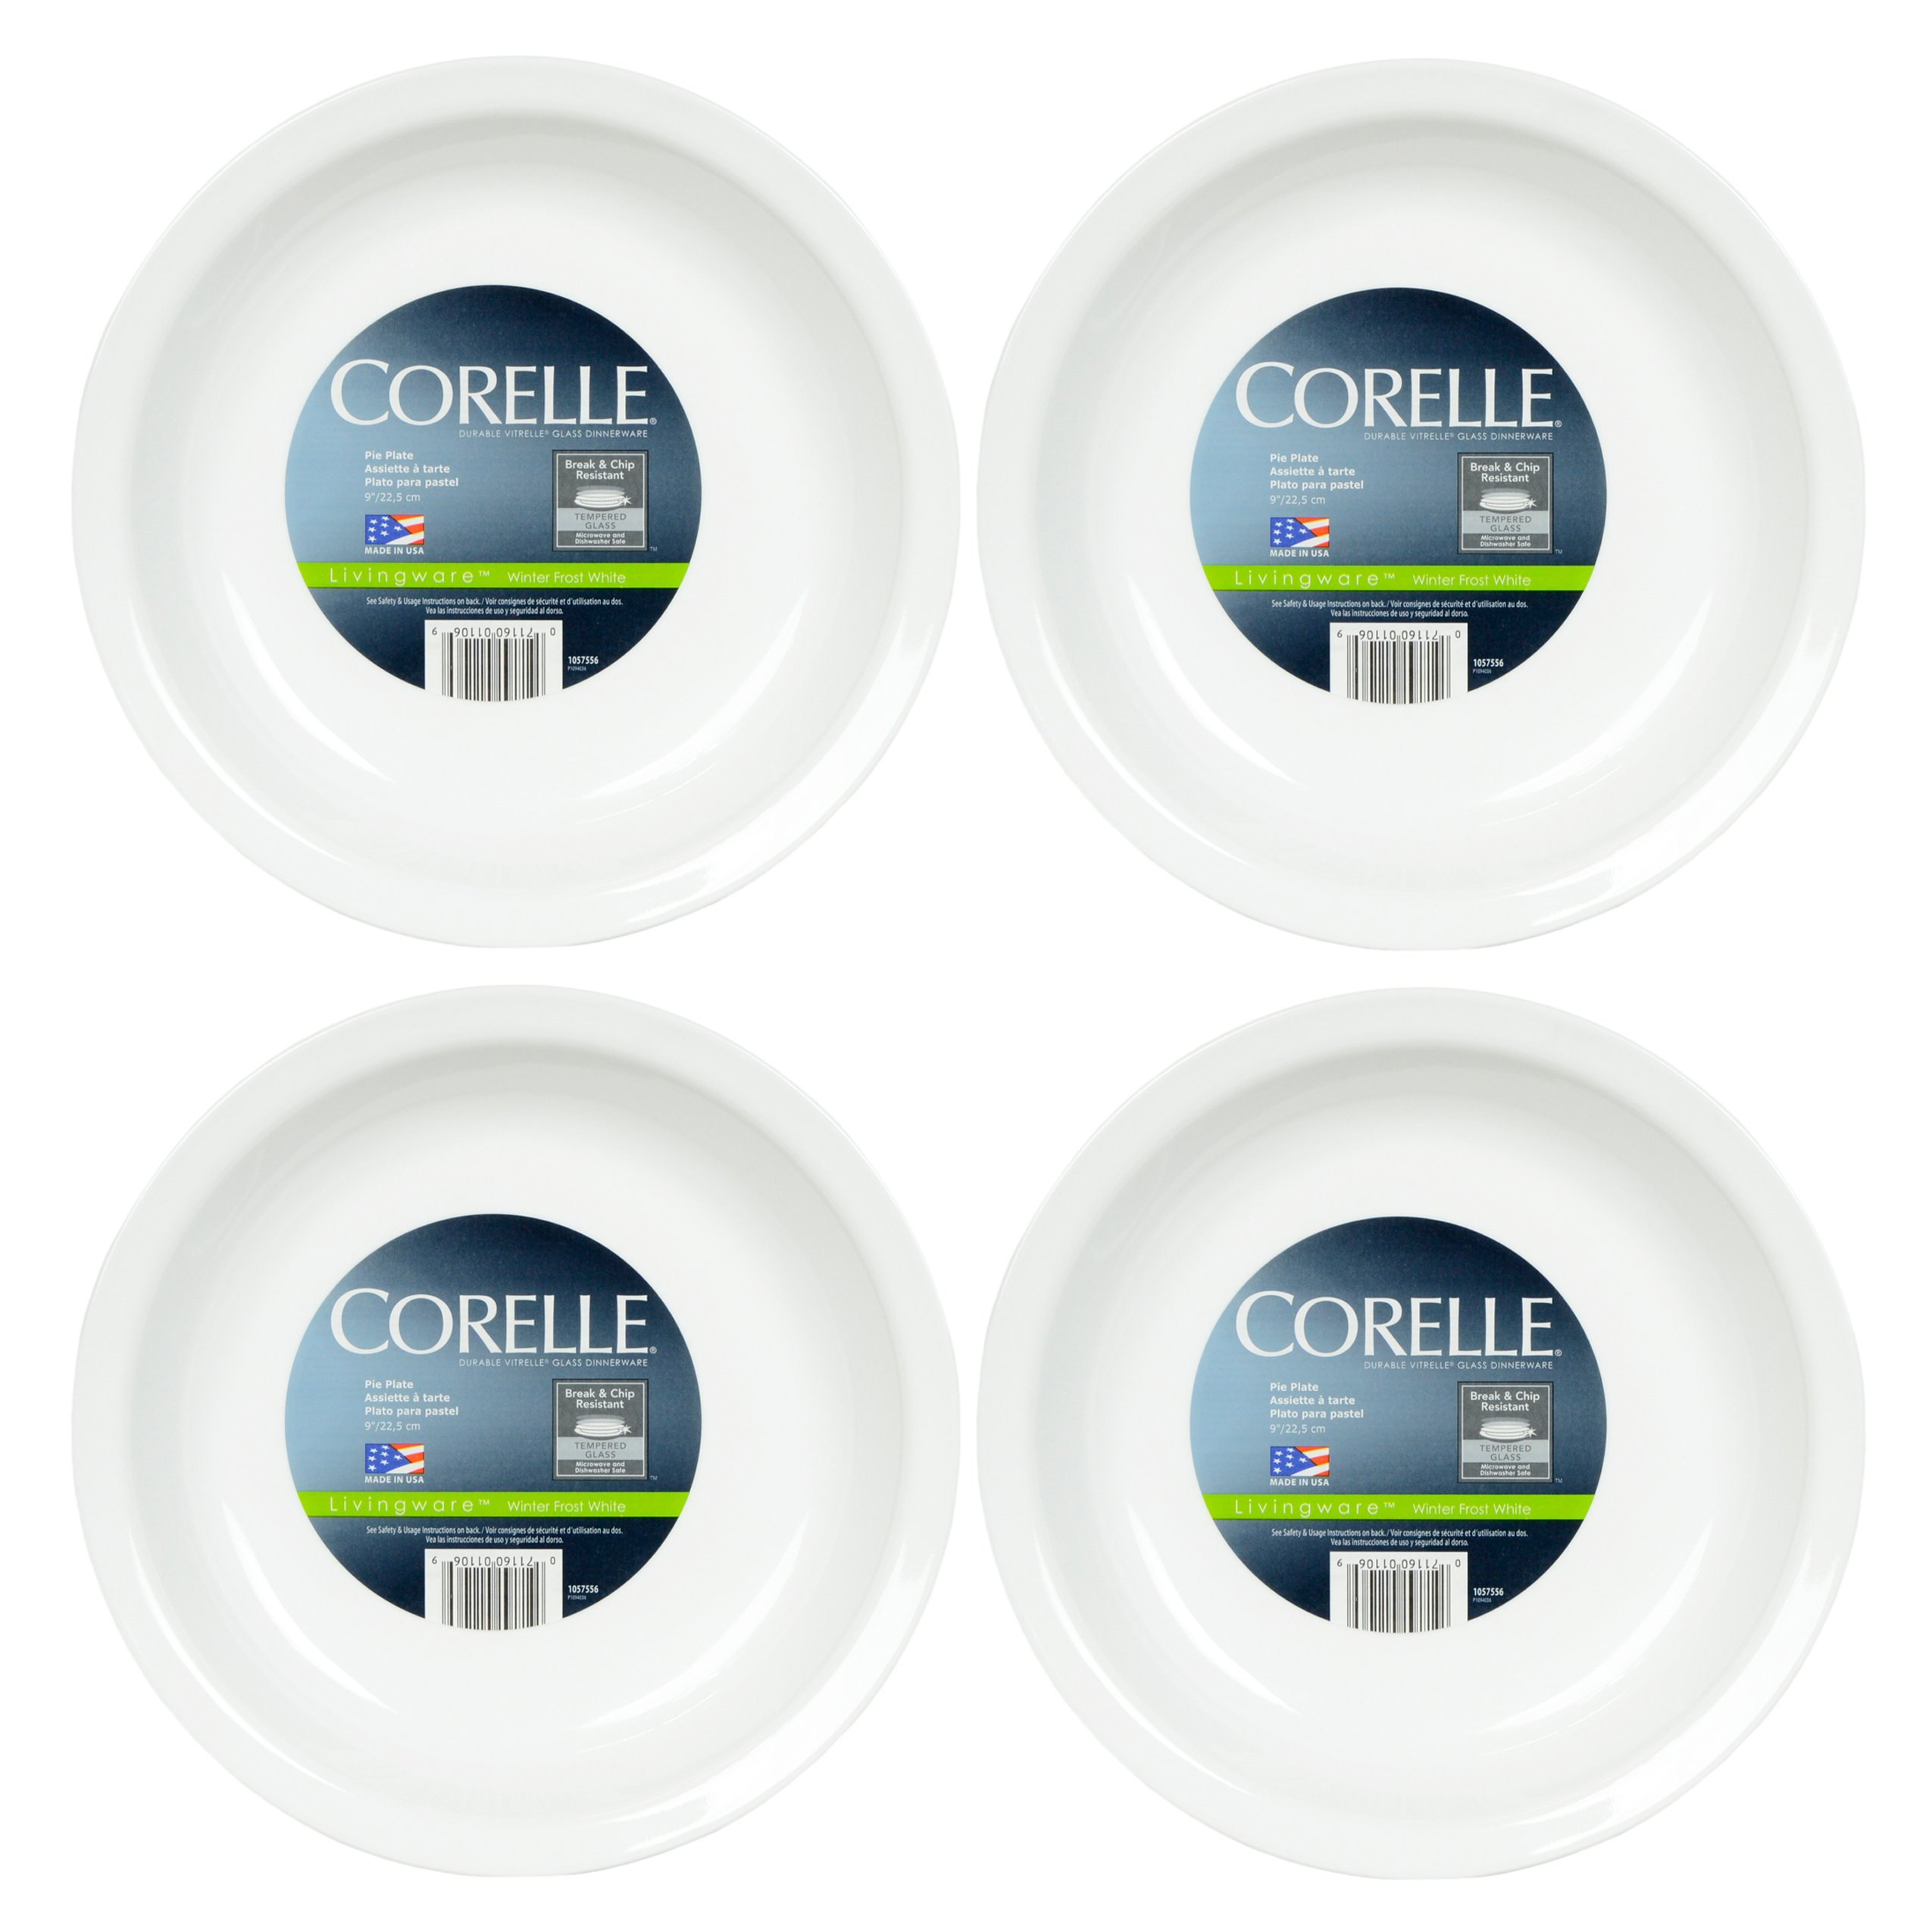 Corelle Livingware 9-Inch Deep Dish Pie Plate, Winter Frost White - 4 Pack by Corelle